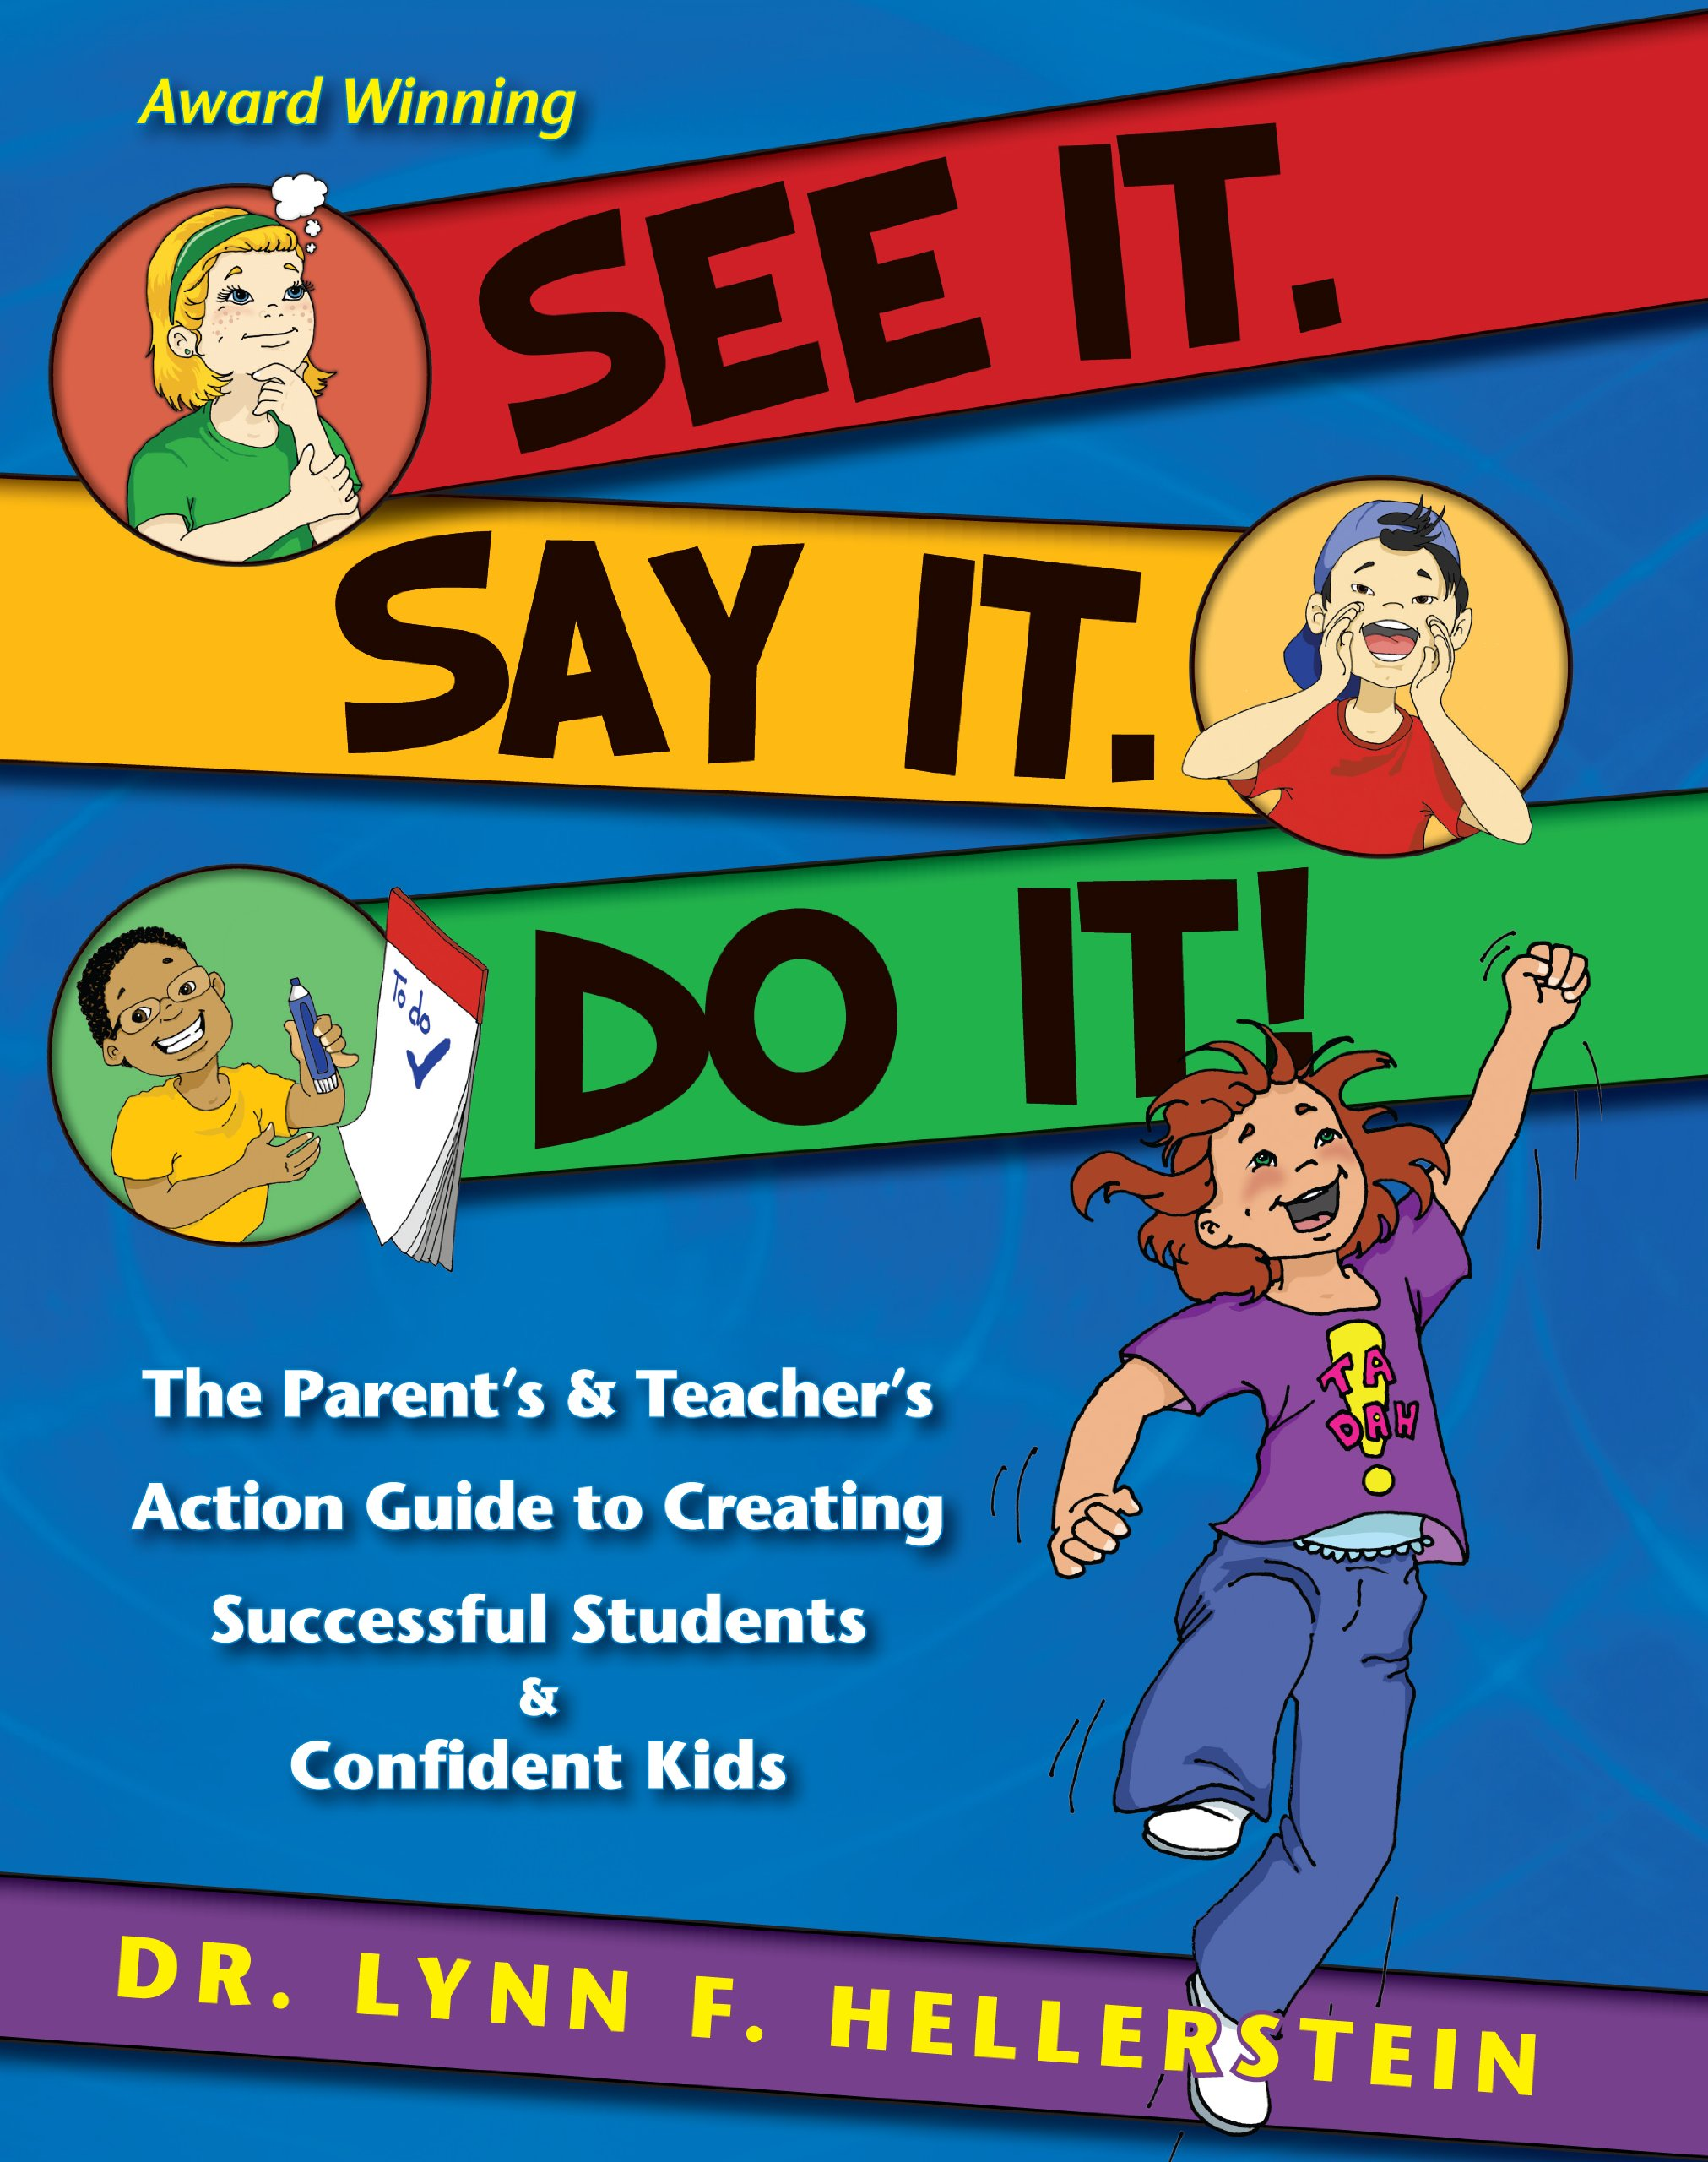 See It. Say It. Do It! The Parent's & Teacher's Action Guide to Creating Successful Students & Confident Kids ebook